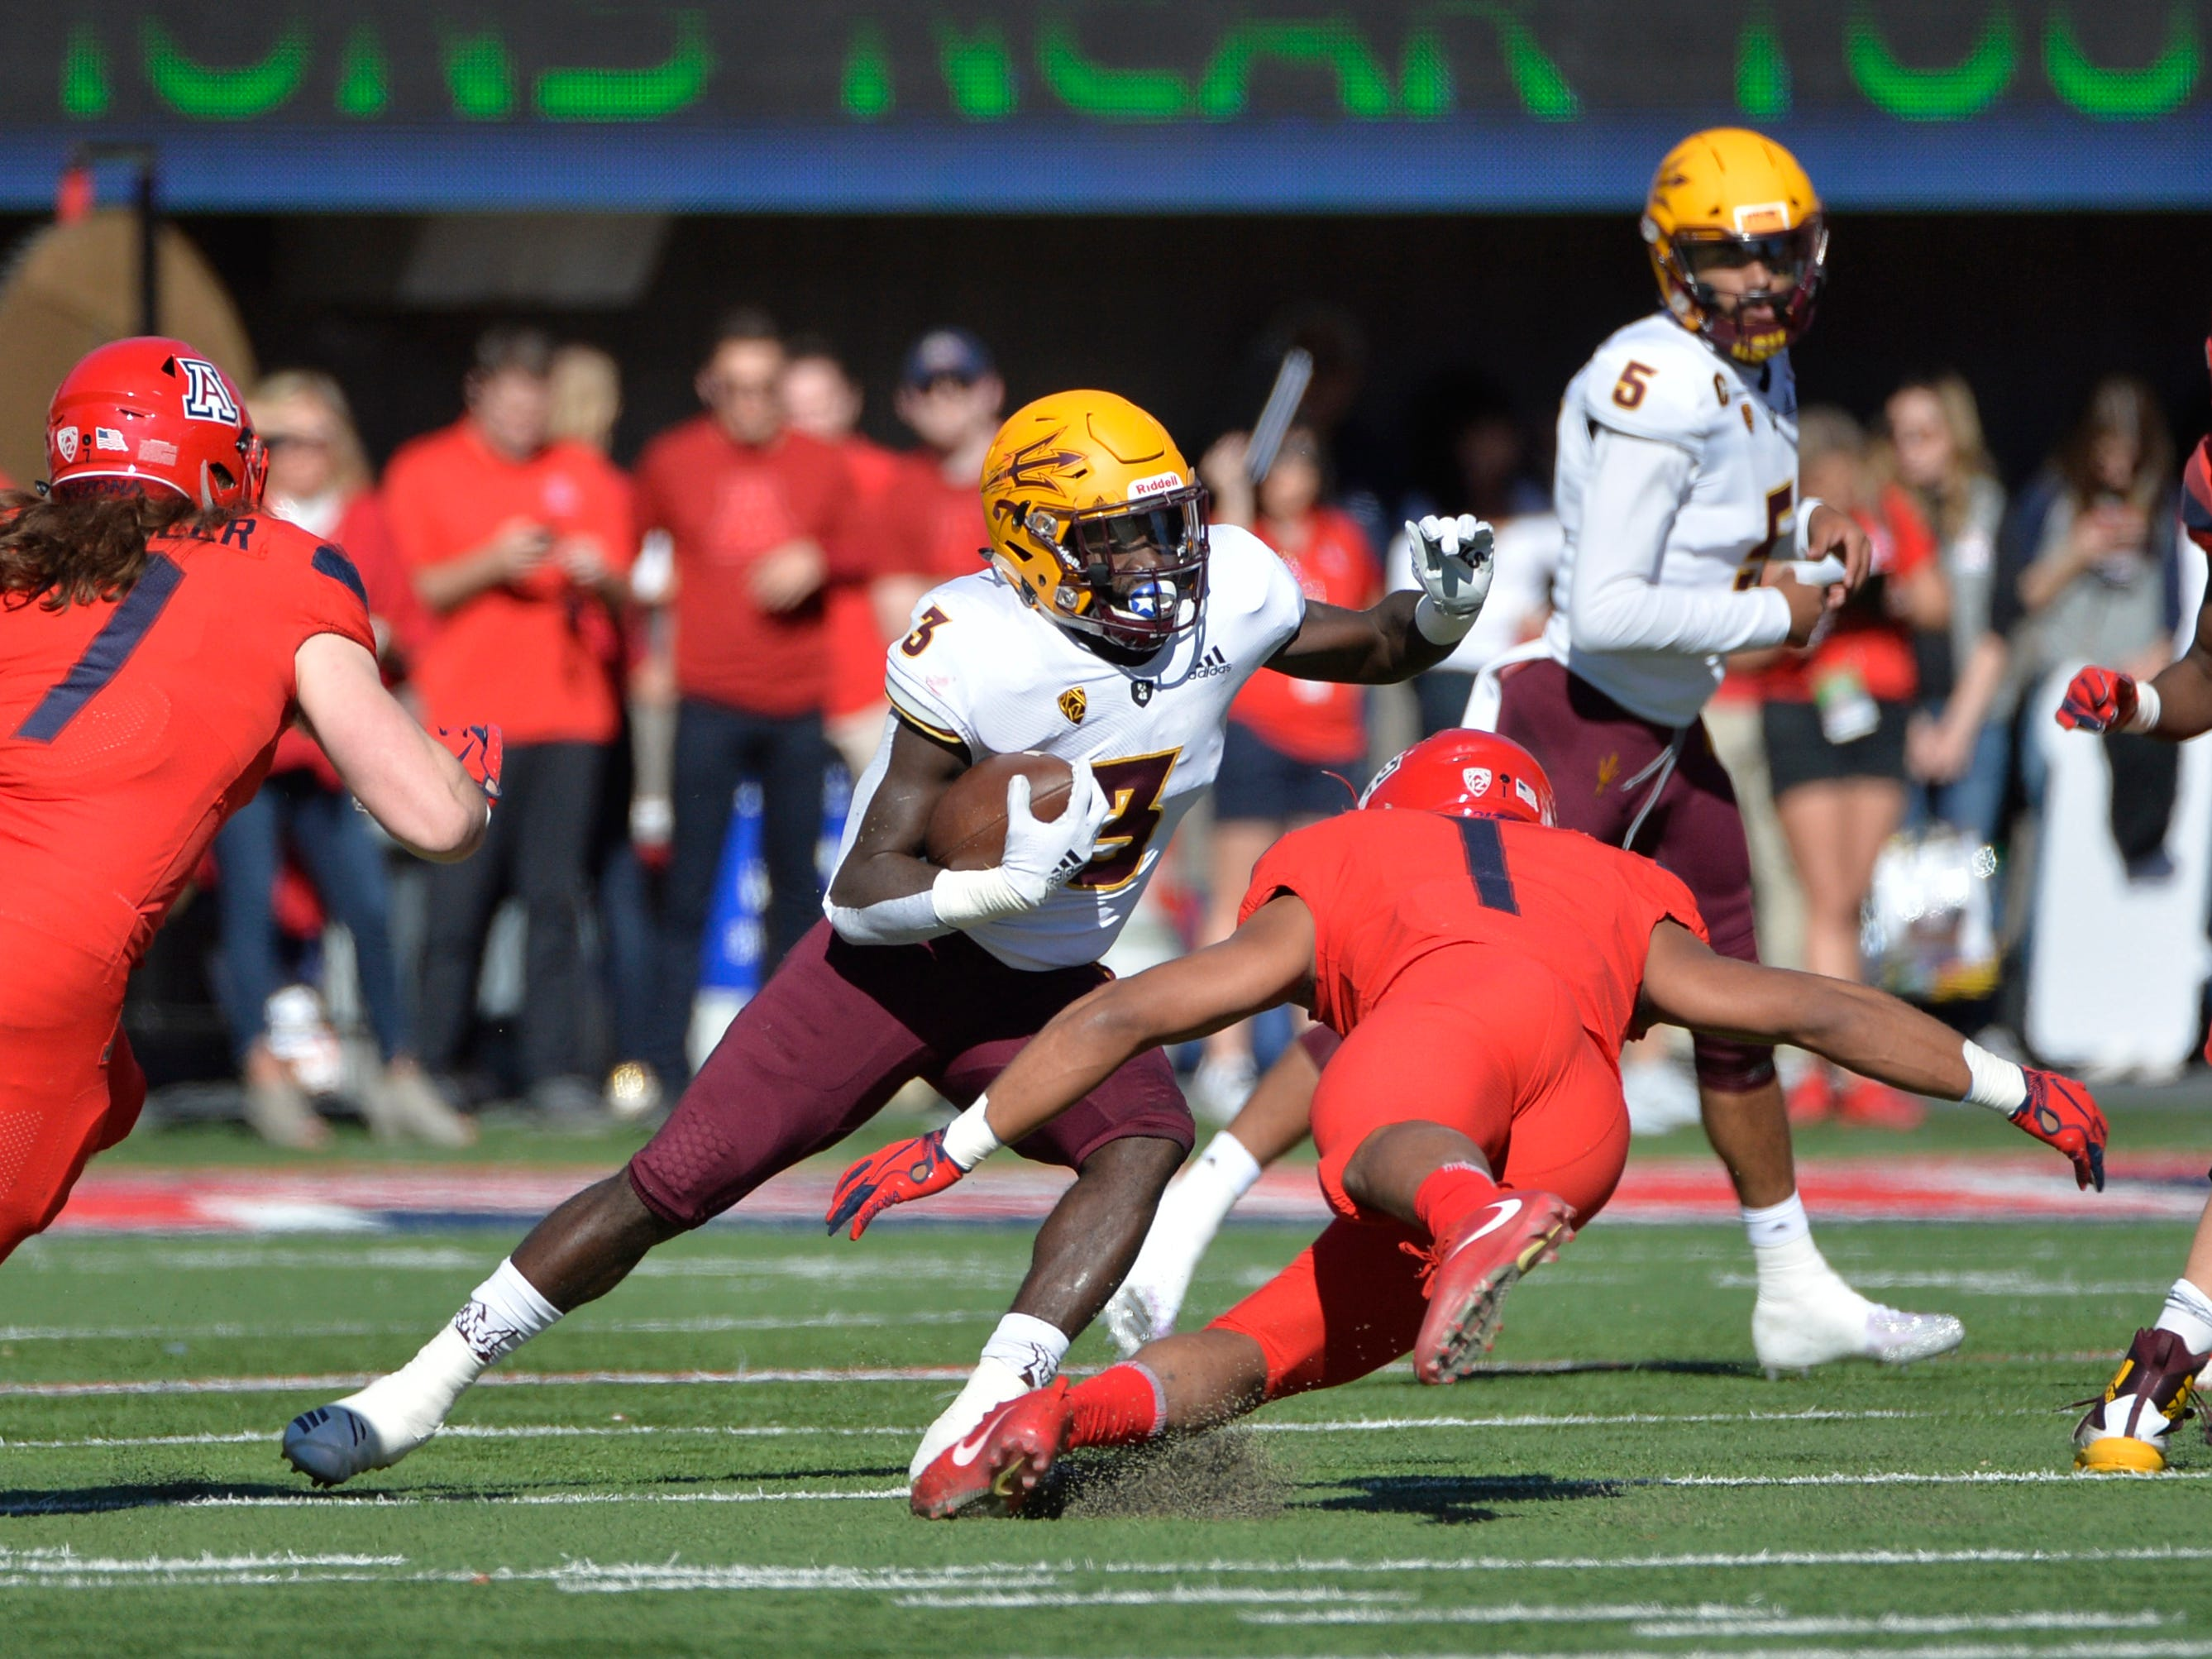 Nov 24, 2018; Tucson, AZ, USA; Arizona State Sun Devils running back Eno Benjamin (3) runs the ball against Arizona Wildcats linebacker Tony Fields II (1) at Arizona Stadium. Mandatory Credit: Casey Sapio-USA TODAY Sports